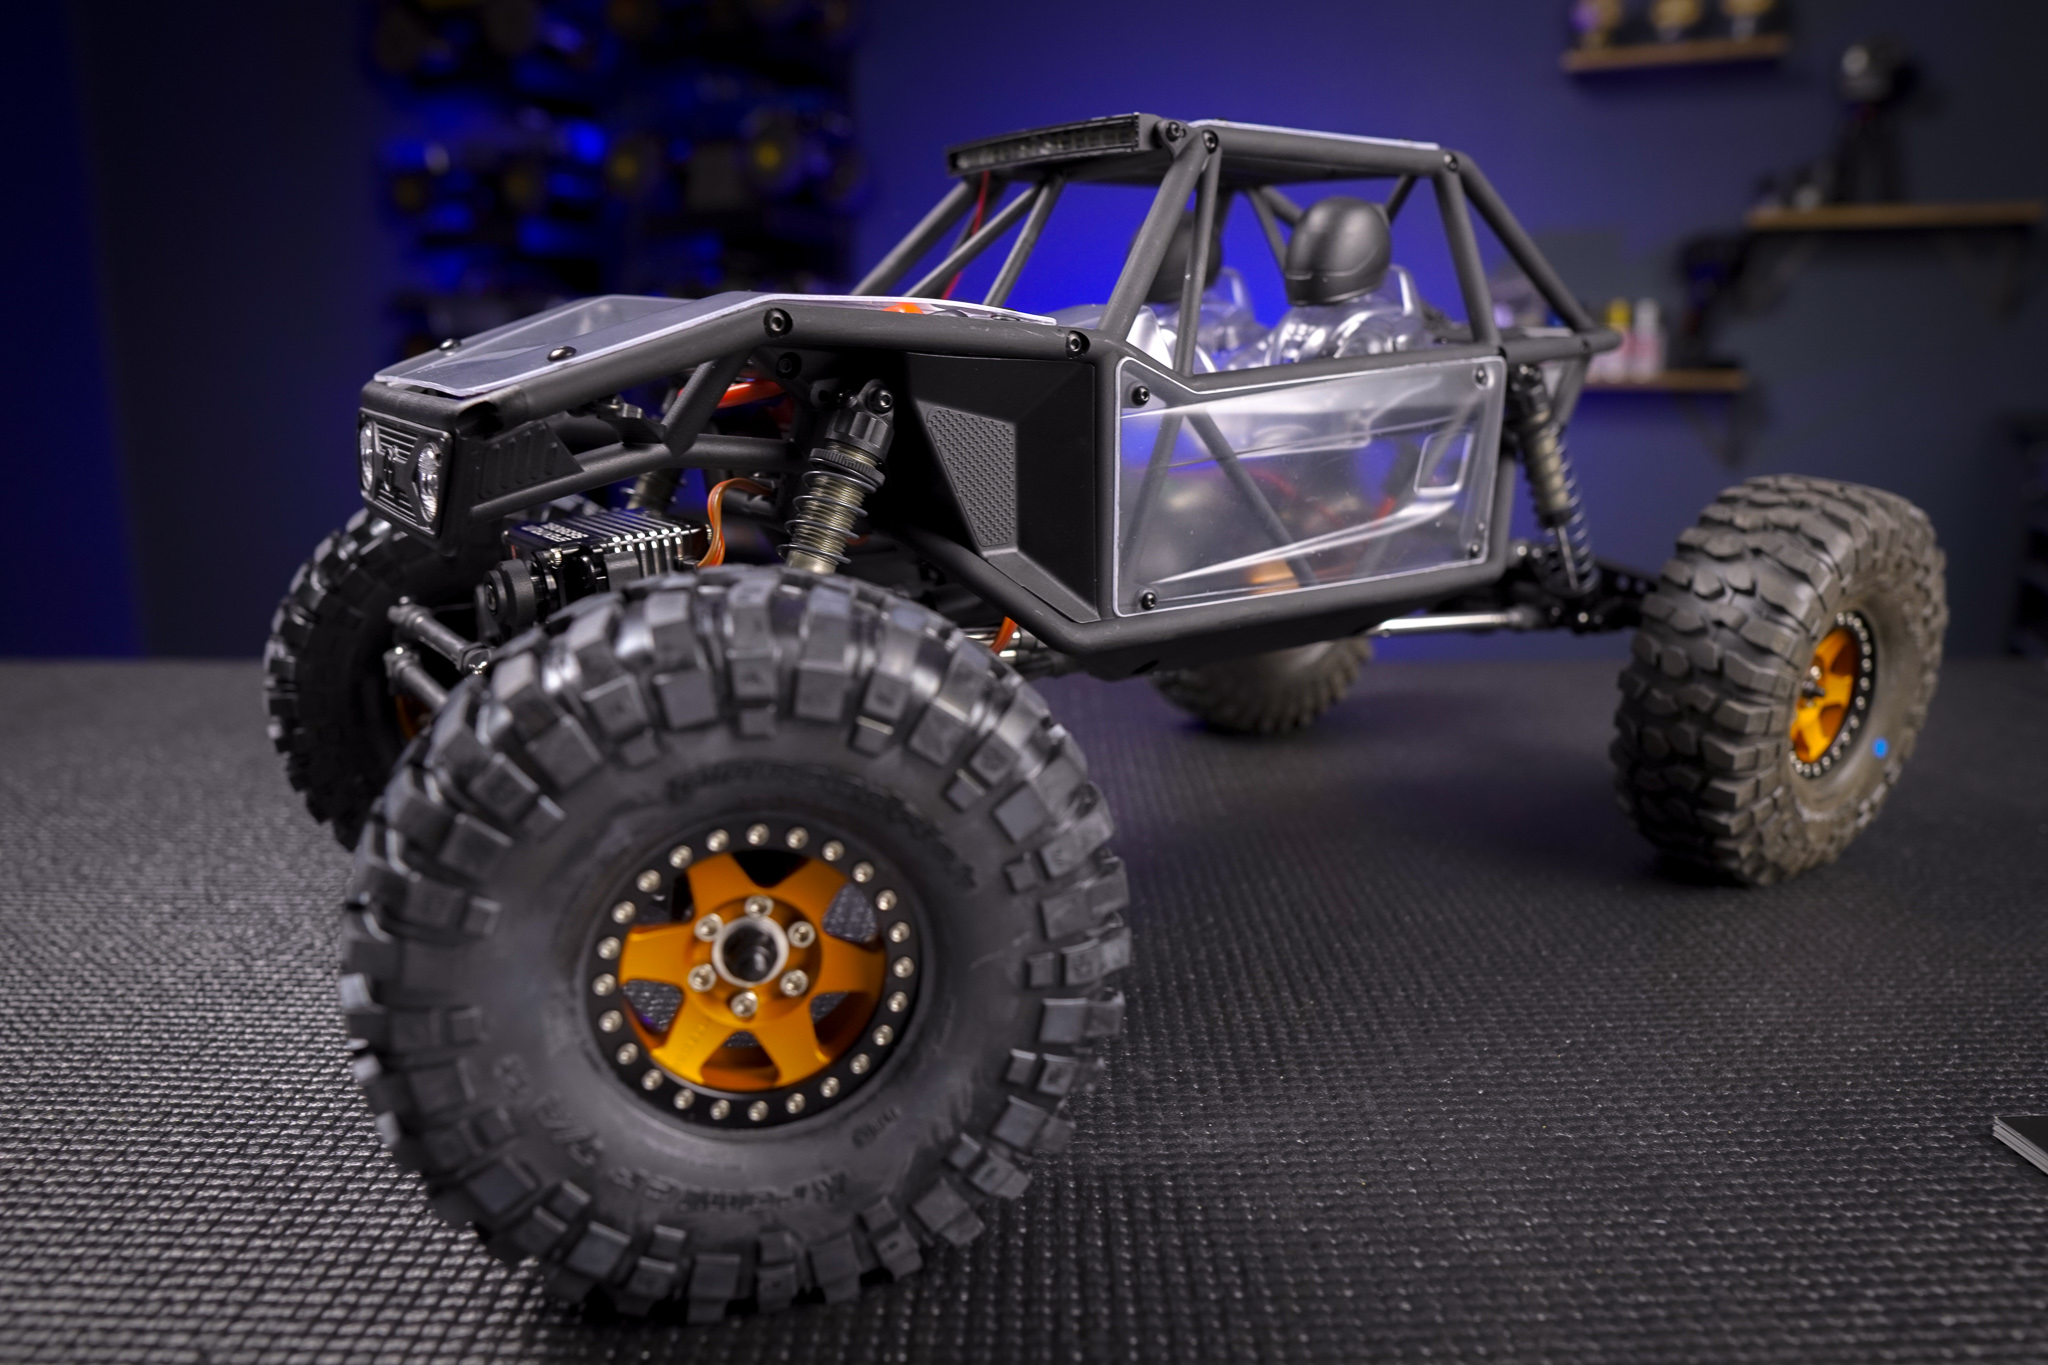 Axial Capra - Axial's jump into the portal market is one of the most appropriate uses yet!